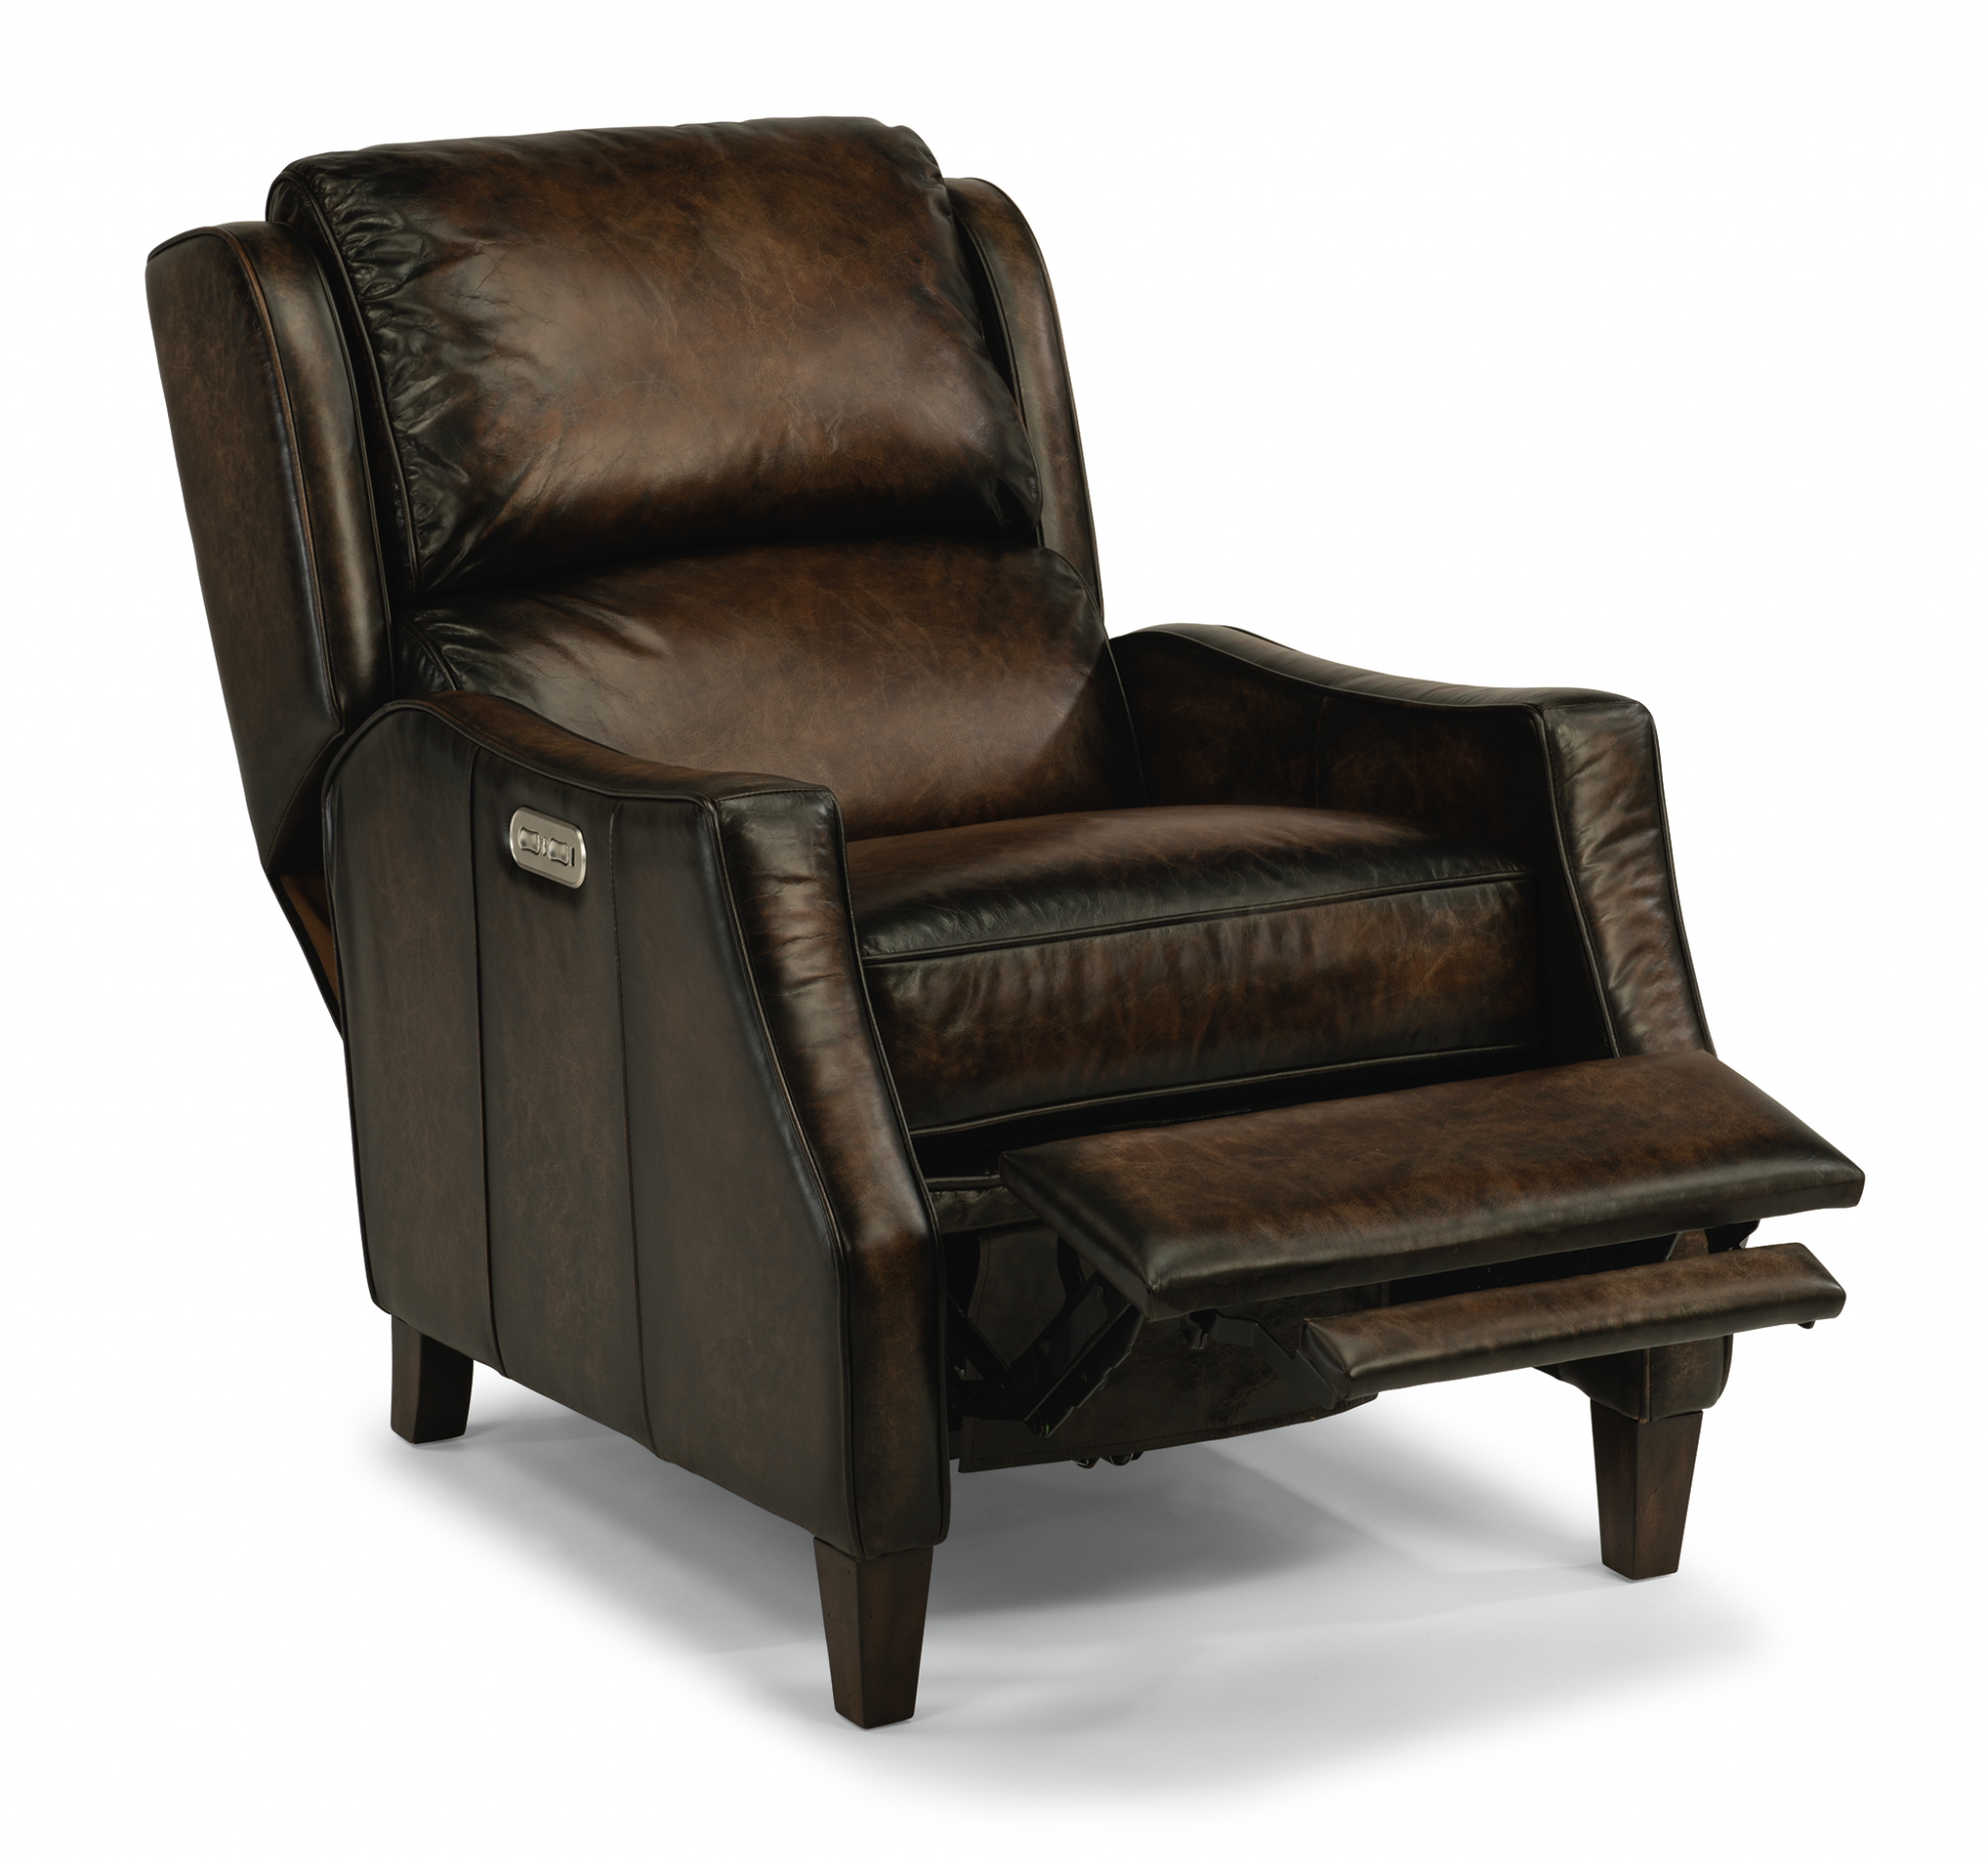 Leather Power High-Leg Recliner with Power Headrest  sc 1 st  Flexsteel & Reclining Chairs u0026 Sofas | Reclining Furniture from Flexsteel islam-shia.org